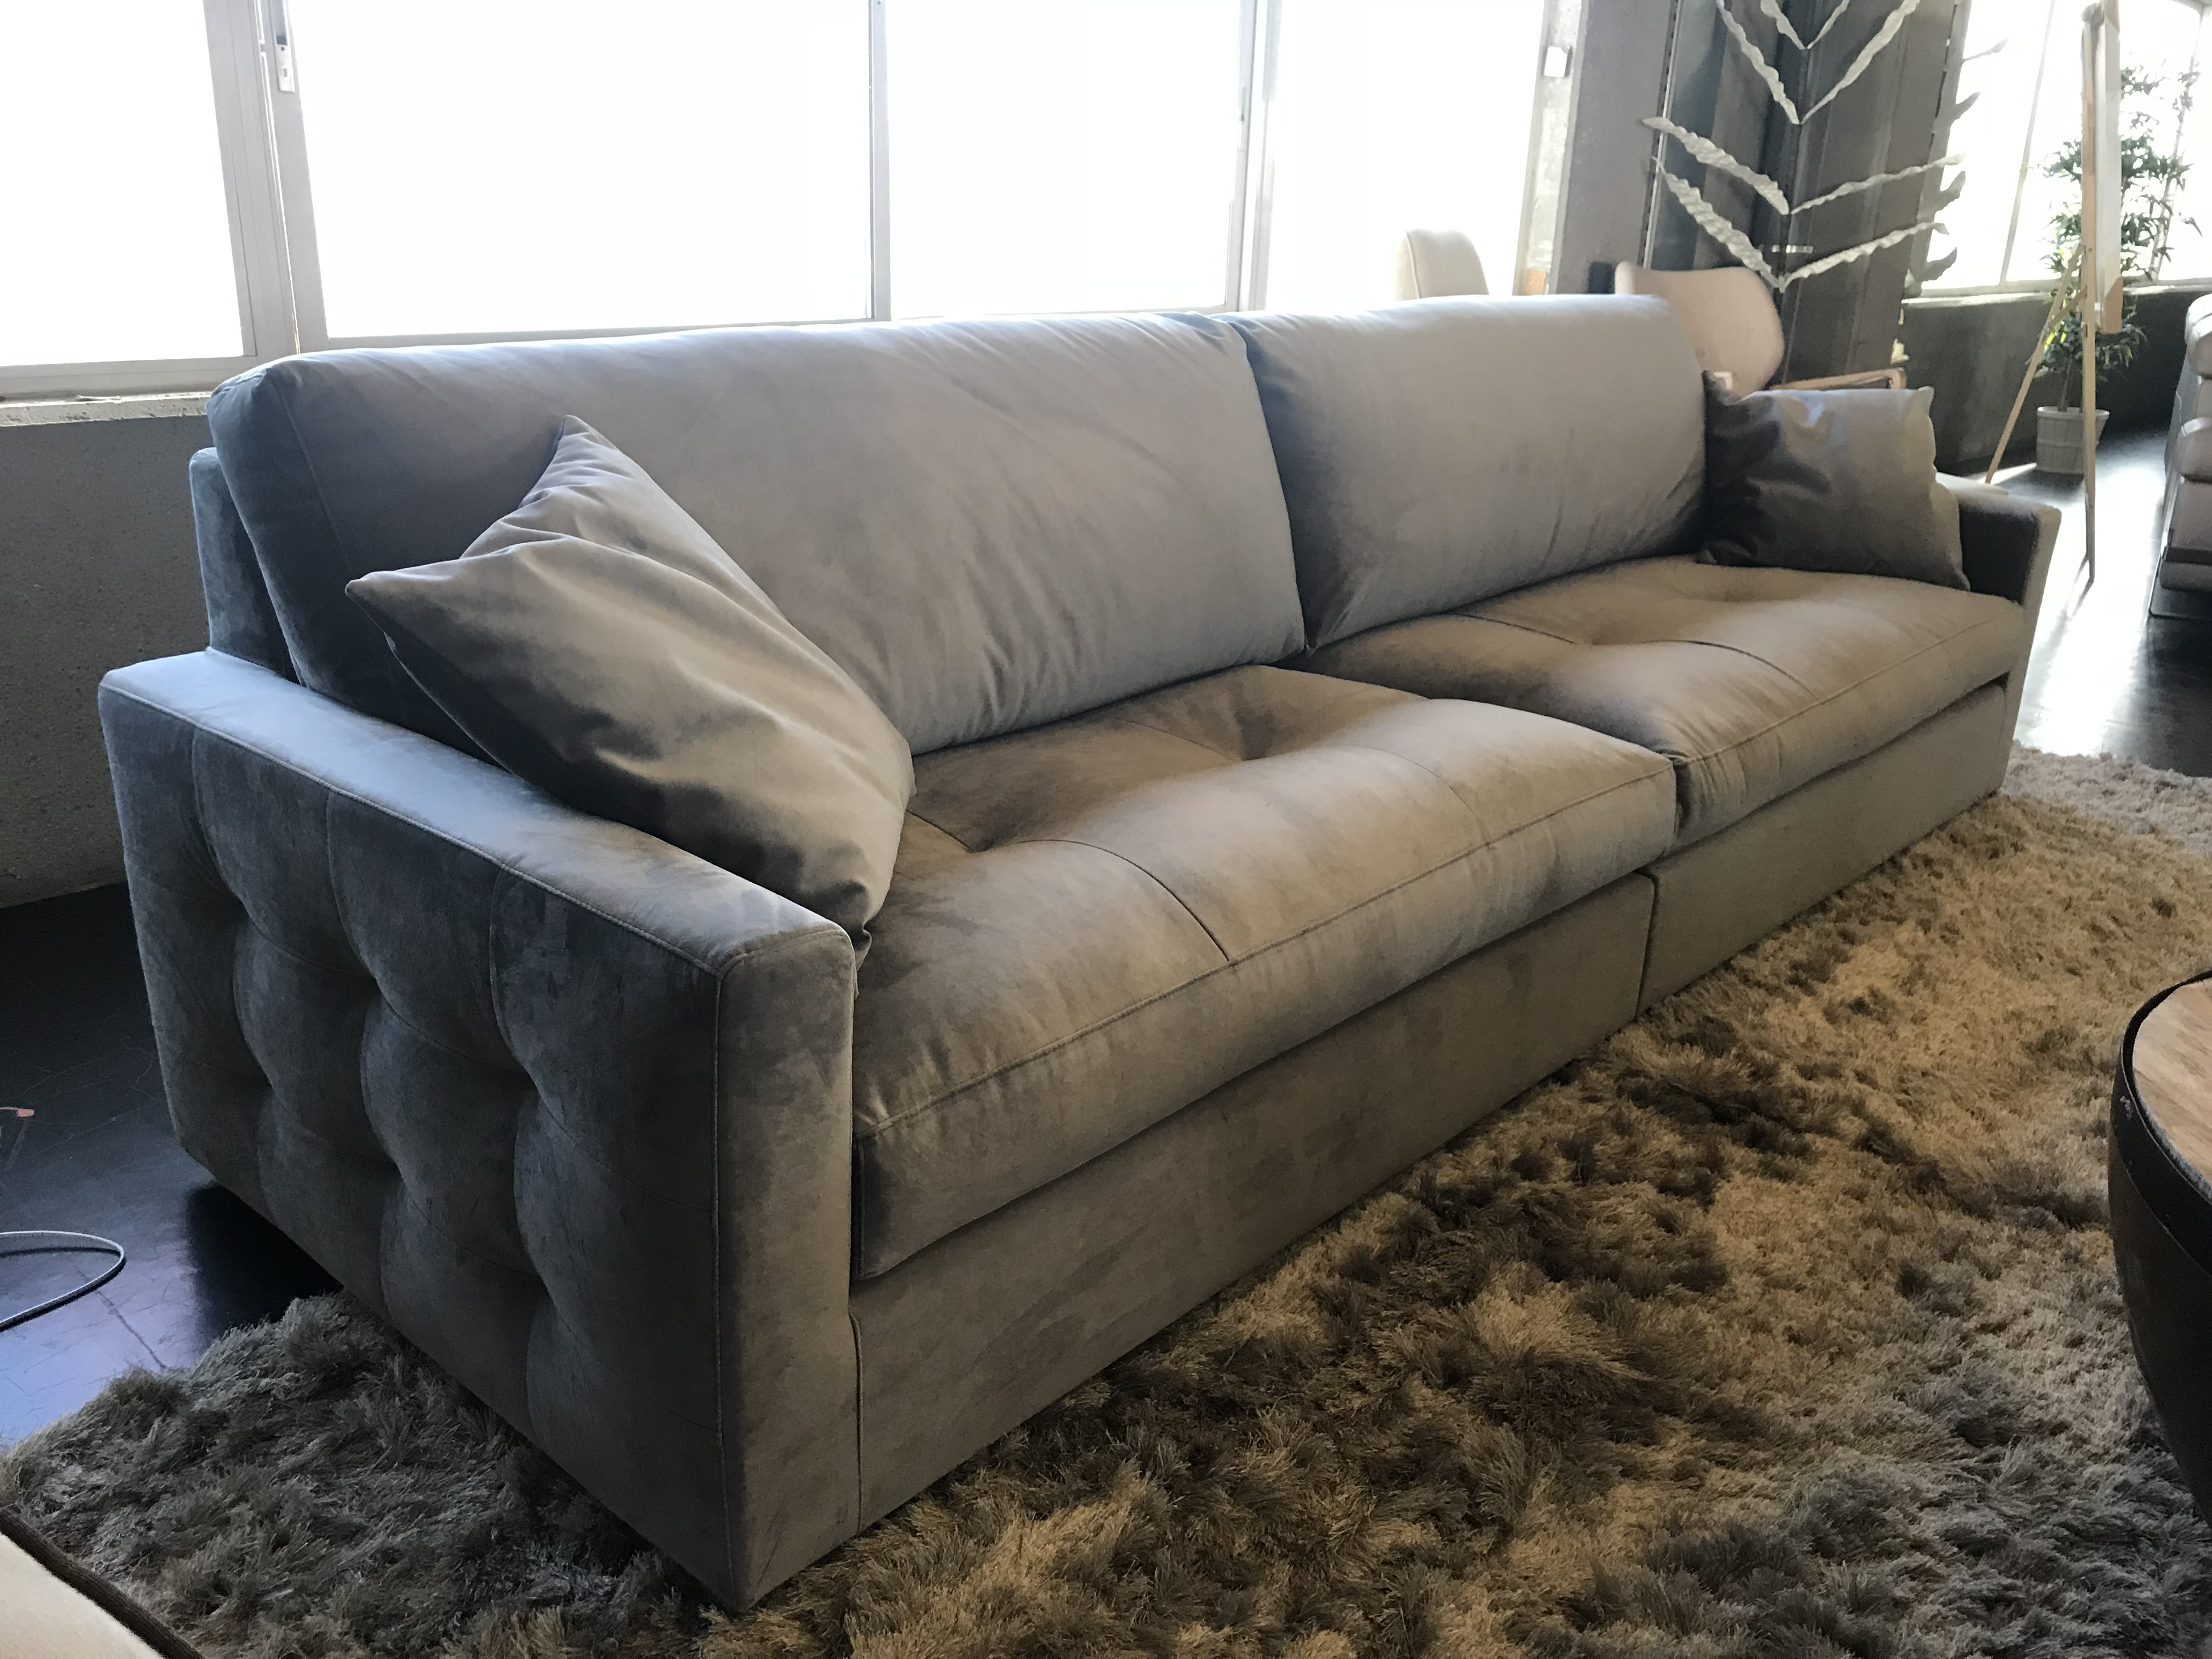 Sofas Madrid Outlet Q5df Outlet the sofa Pany